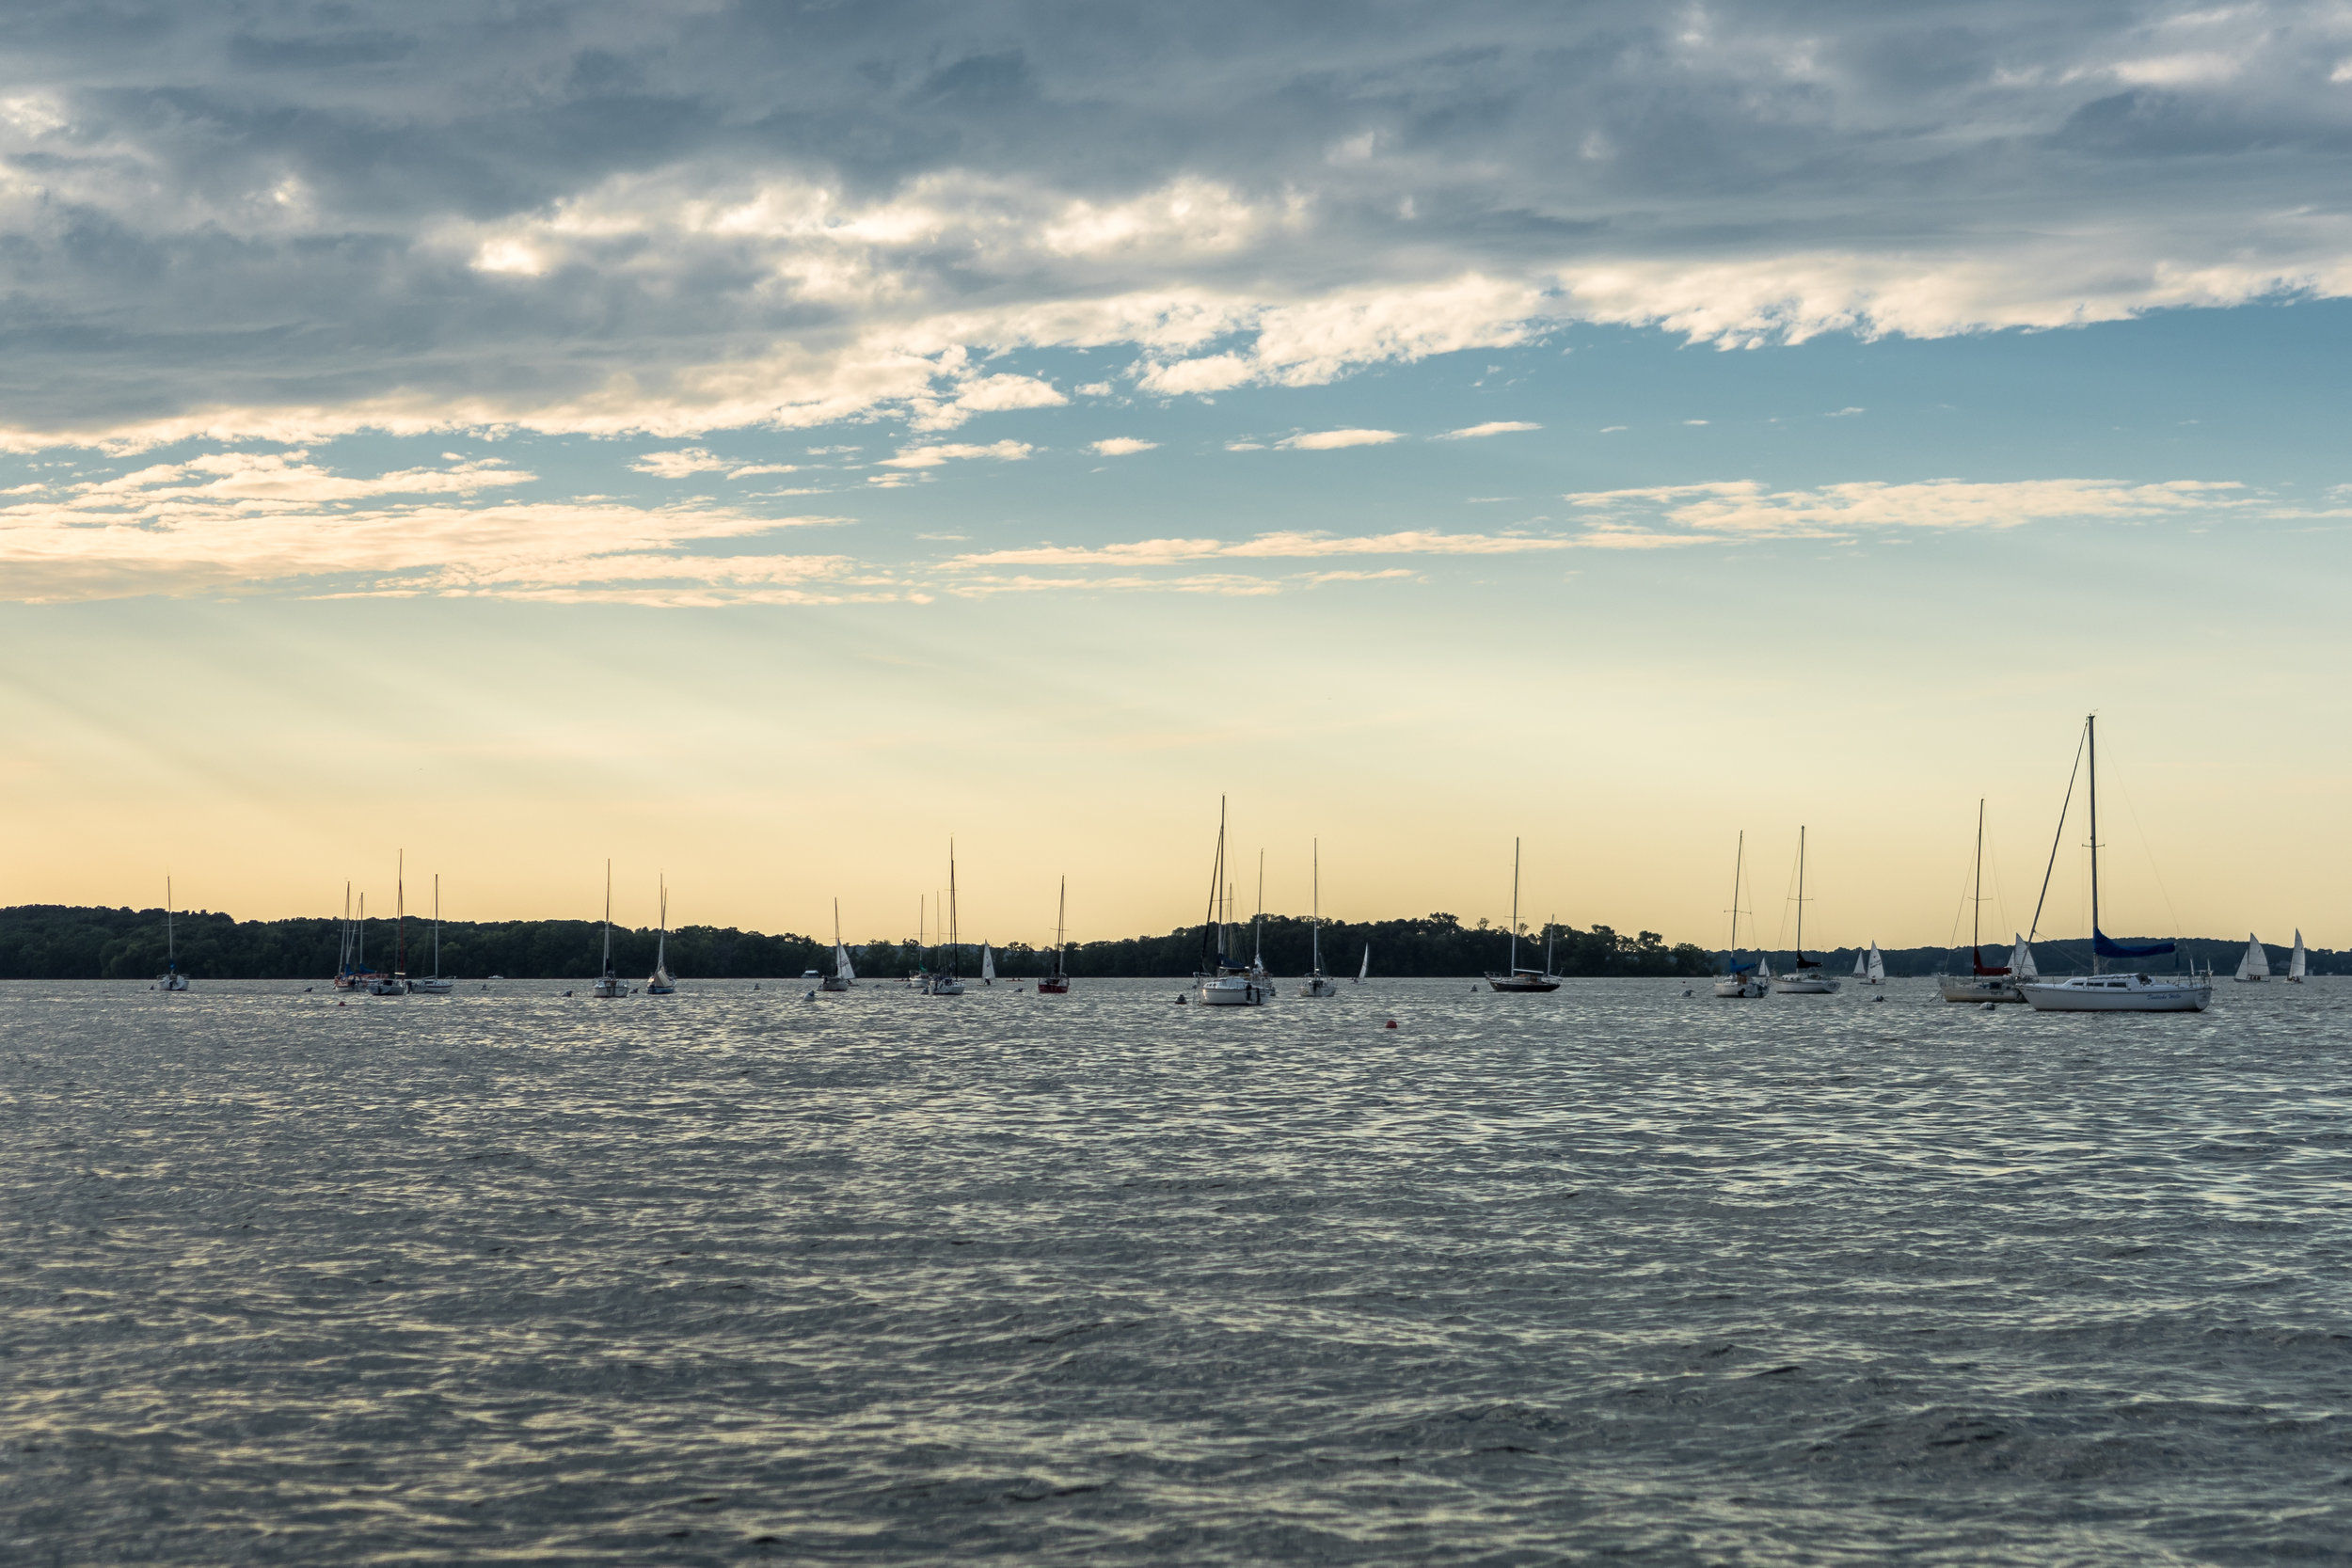 Sail_Boats_Lake_Mendota.jpg